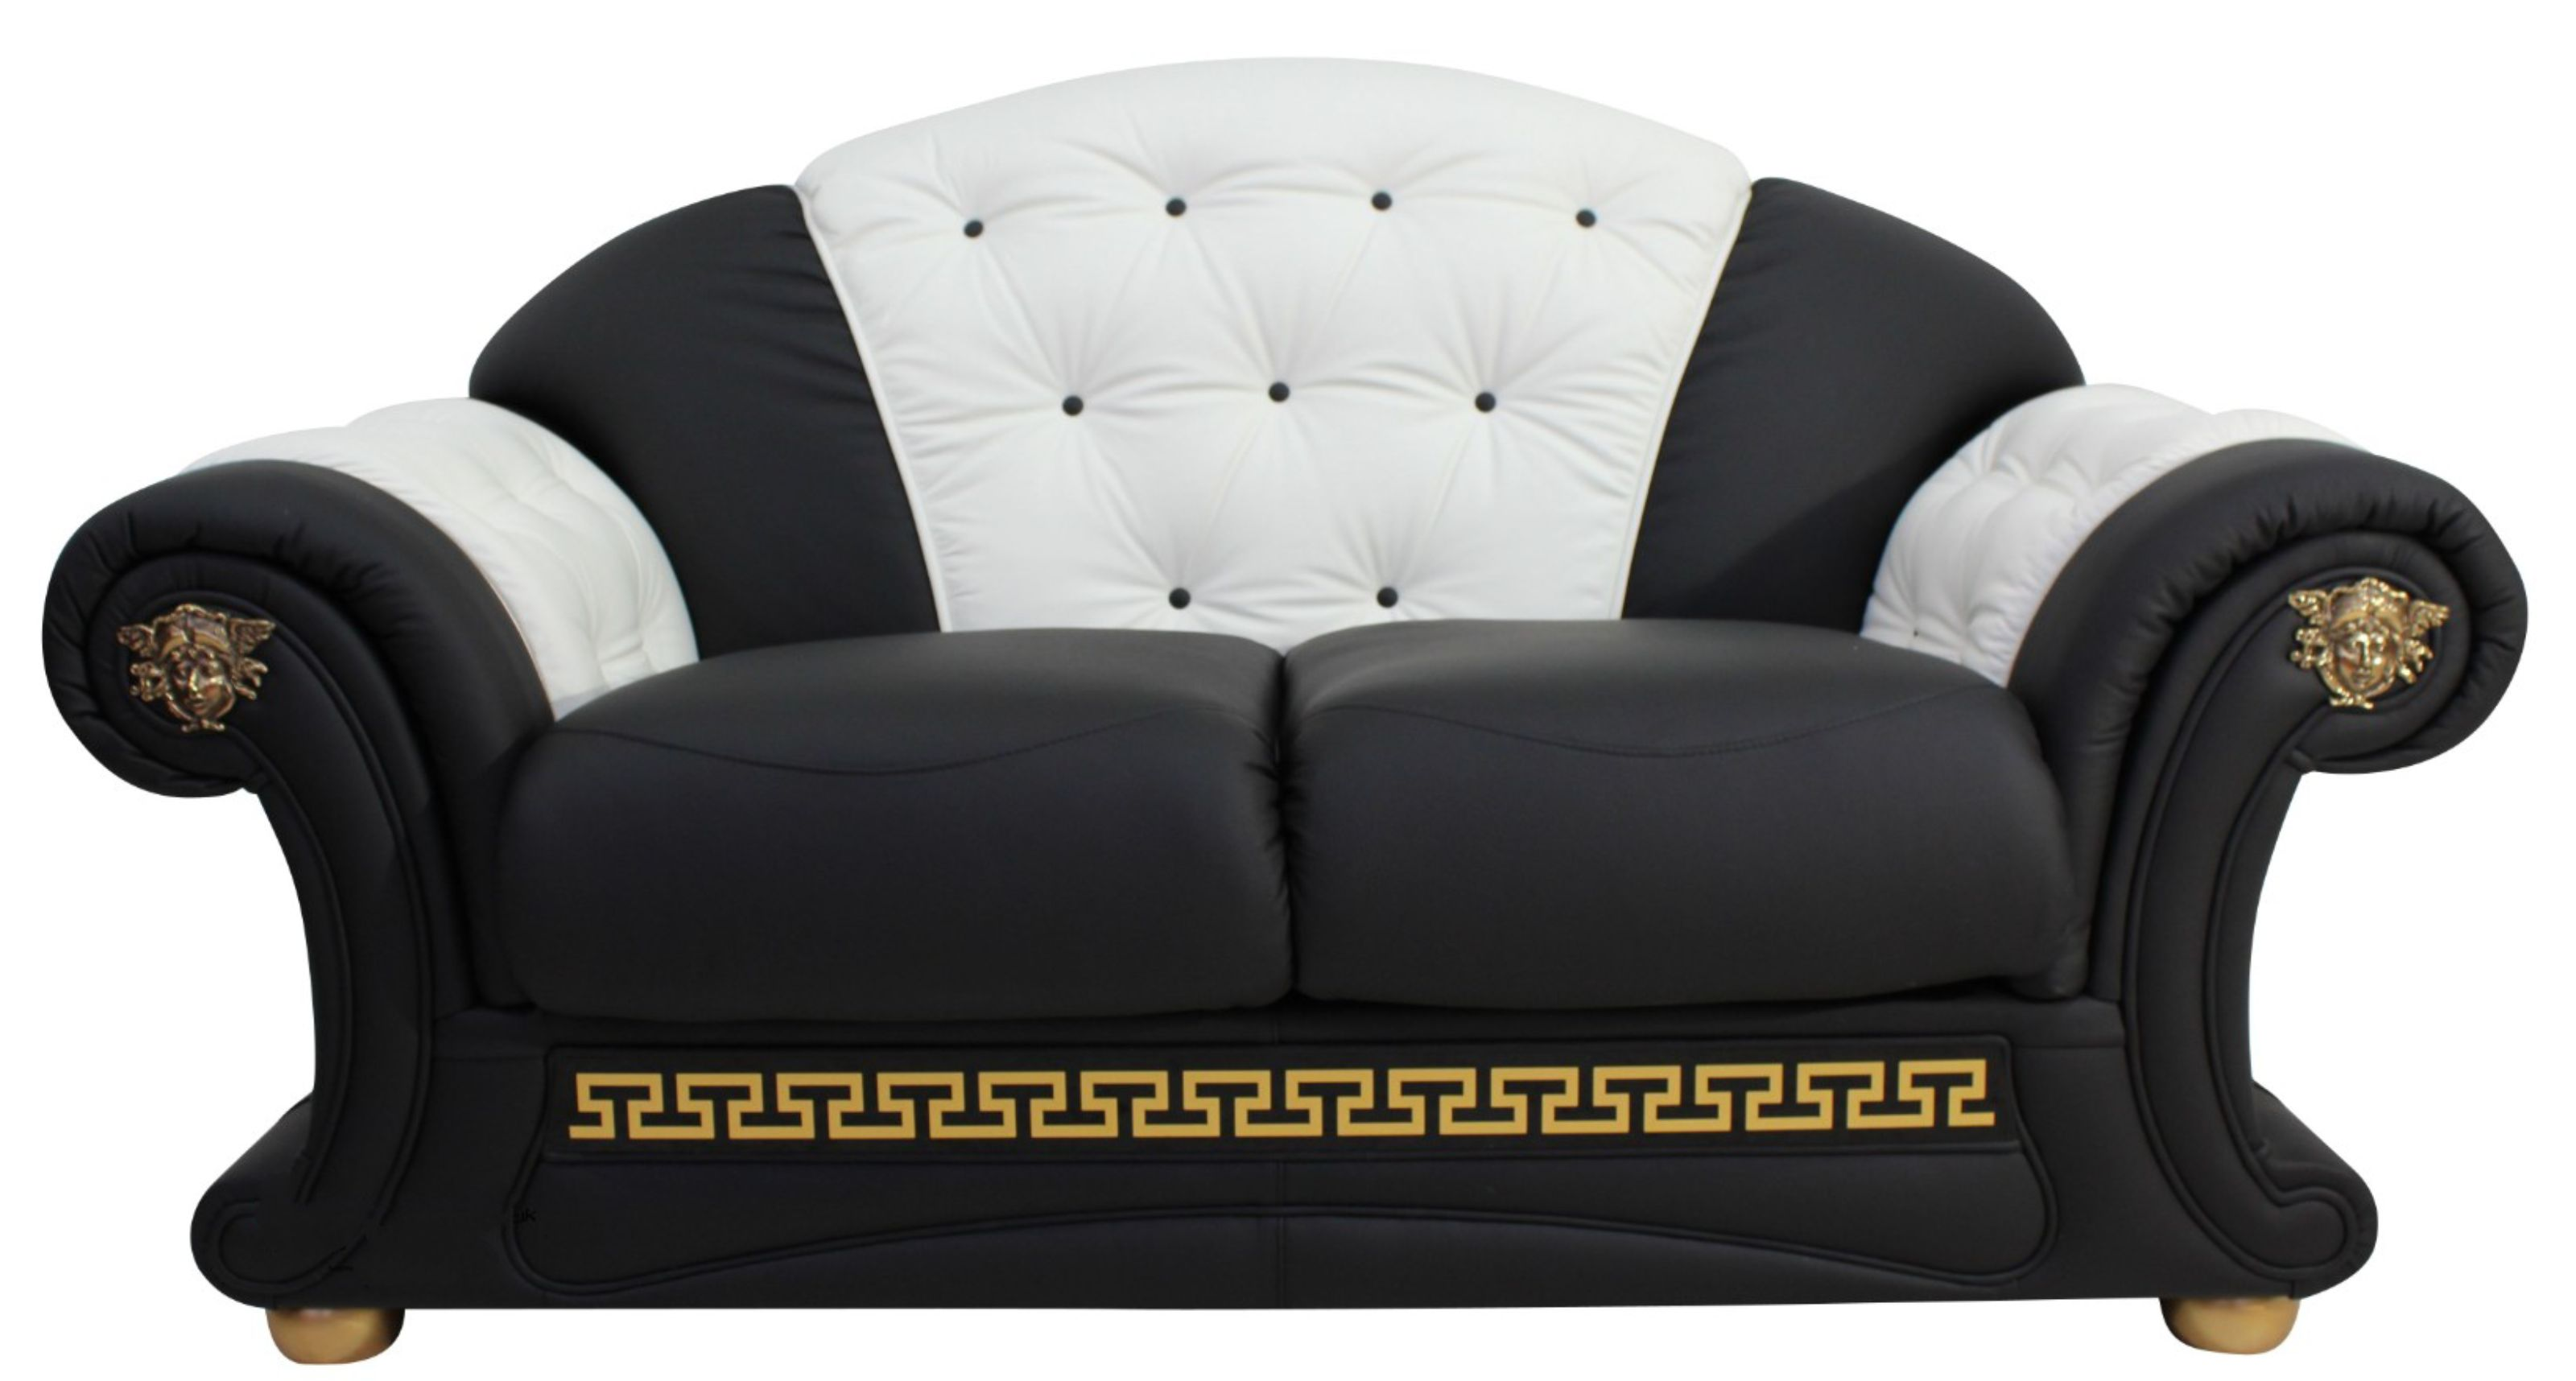 Outstanding North Carolina 2 Seater Sofa Settee Genuine Italian Black White Leather Offer Pabps2019 Chair Design Images Pabps2019Com